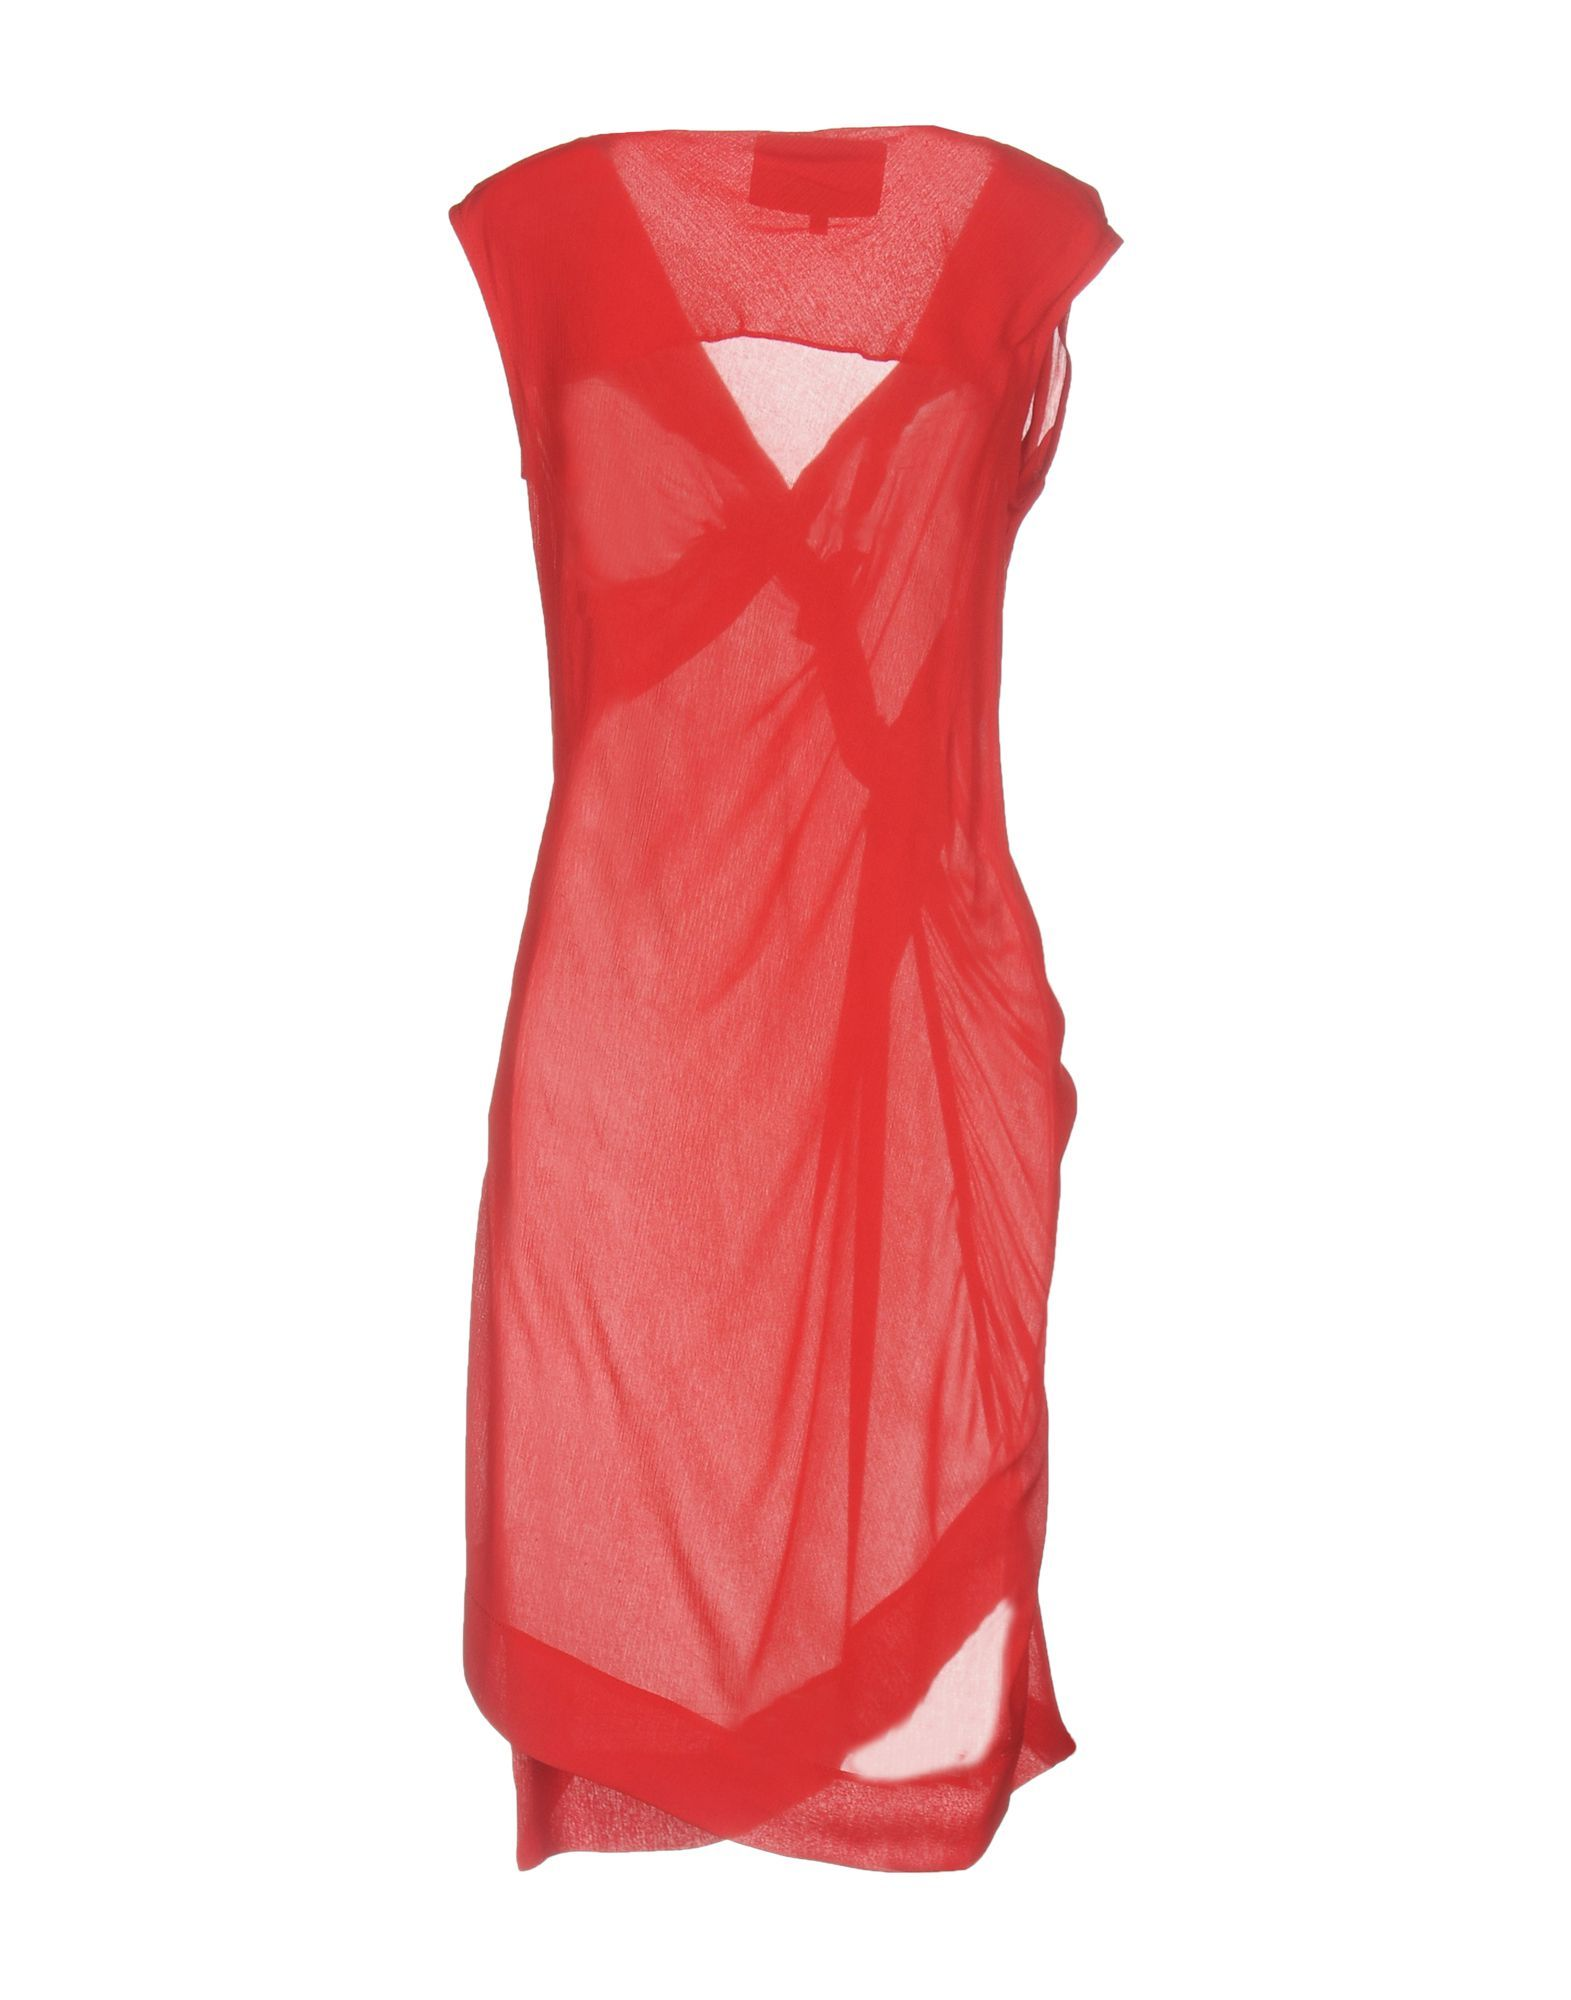 Vivienne Westwood Anglomania Red Crepe Dress